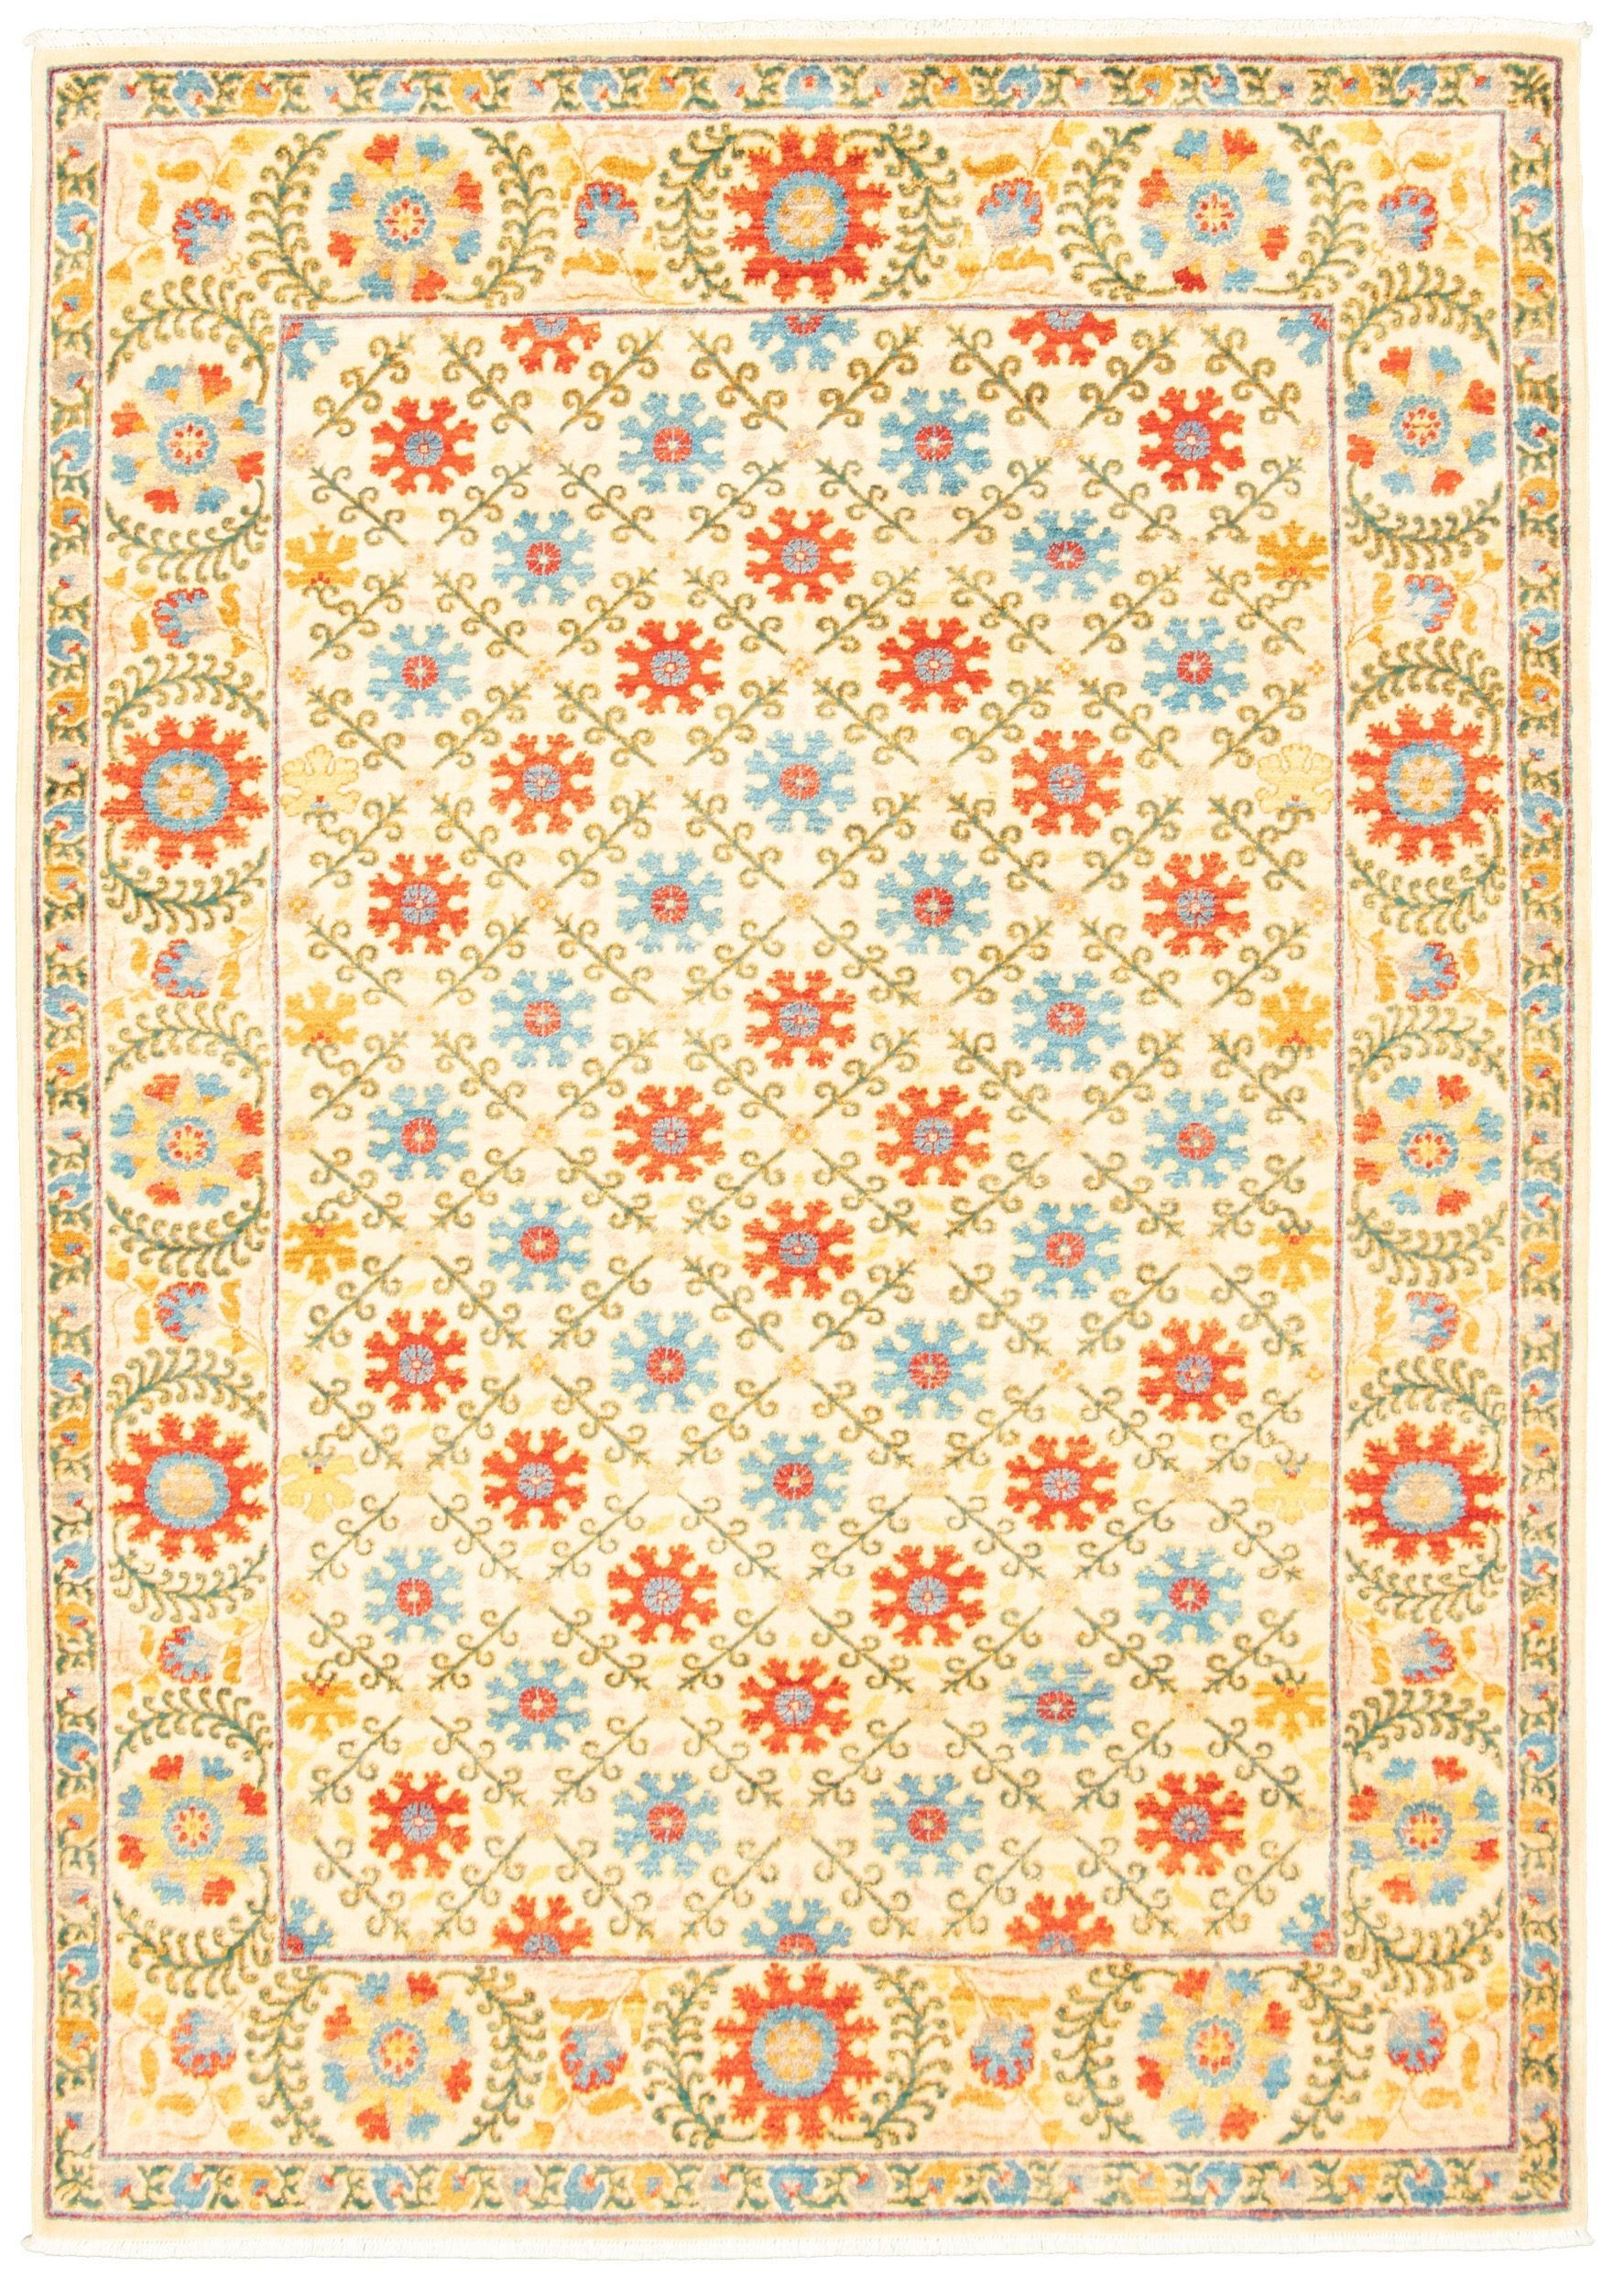 """Hand-knotted Signature Collection Cream Wool Rug 6'2"""" x 8'8"""" Size: 6'2"""" x 8'8"""""""